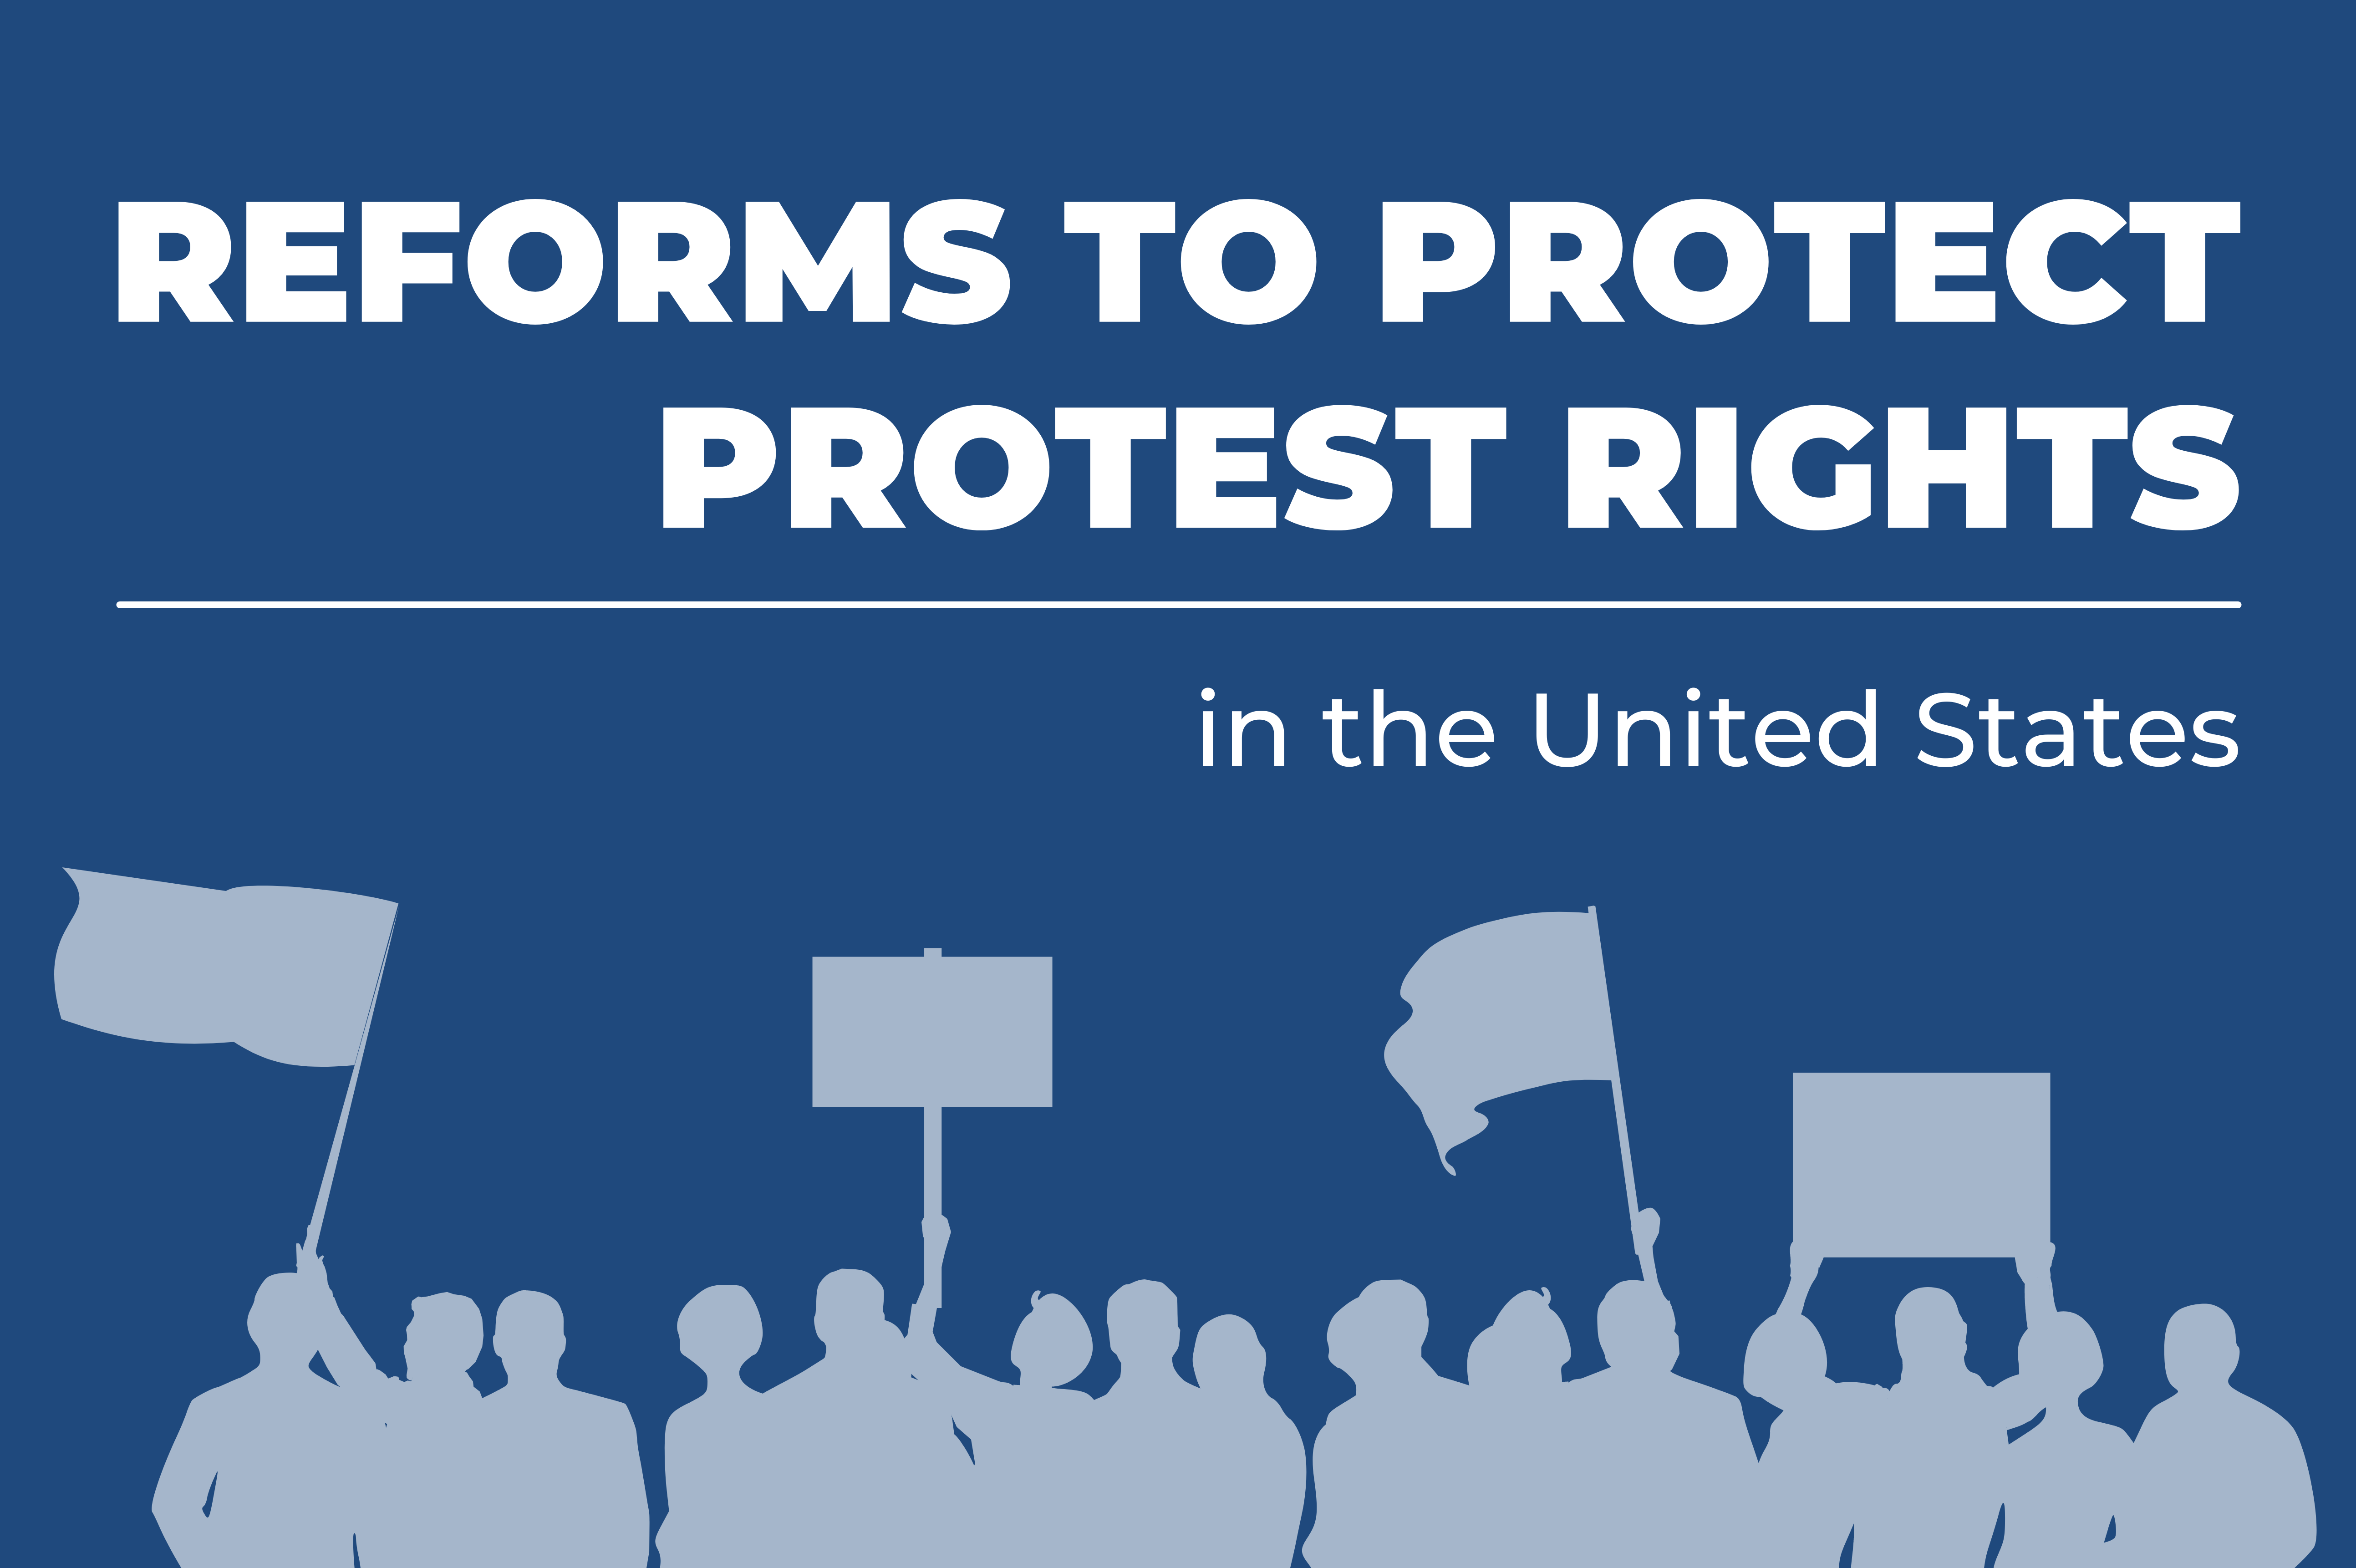 Reforms to Protect Protest Rights graphic with protest